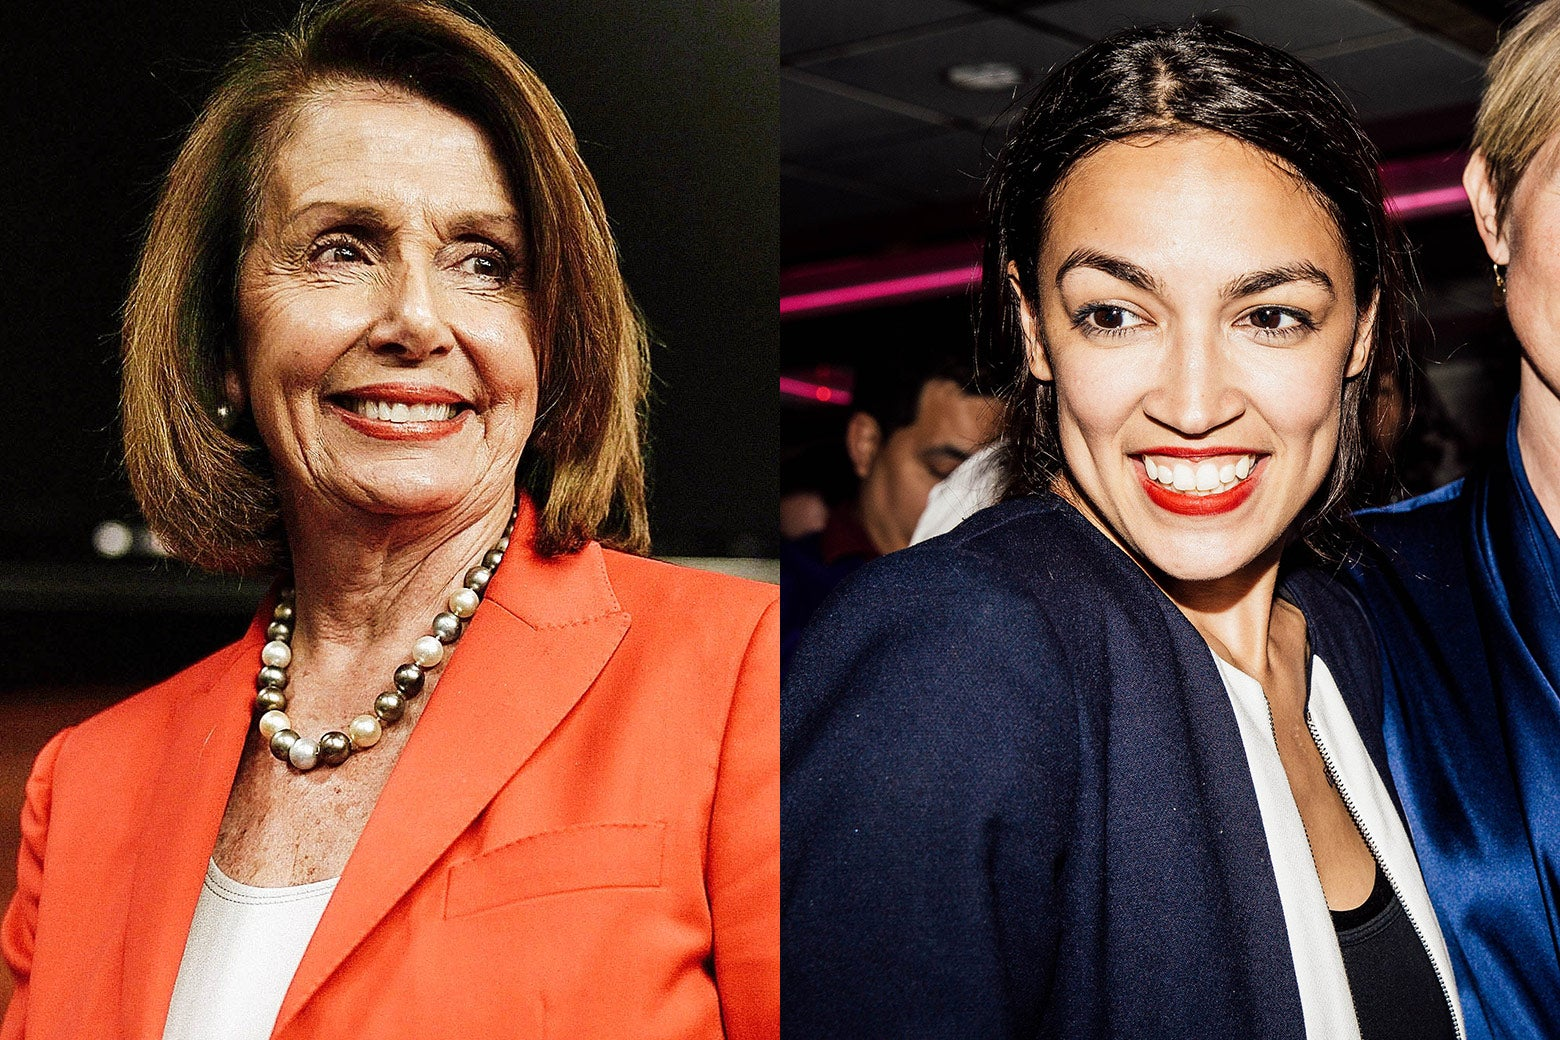 Side by side images of Pelosi and Ocasio-Cortez.